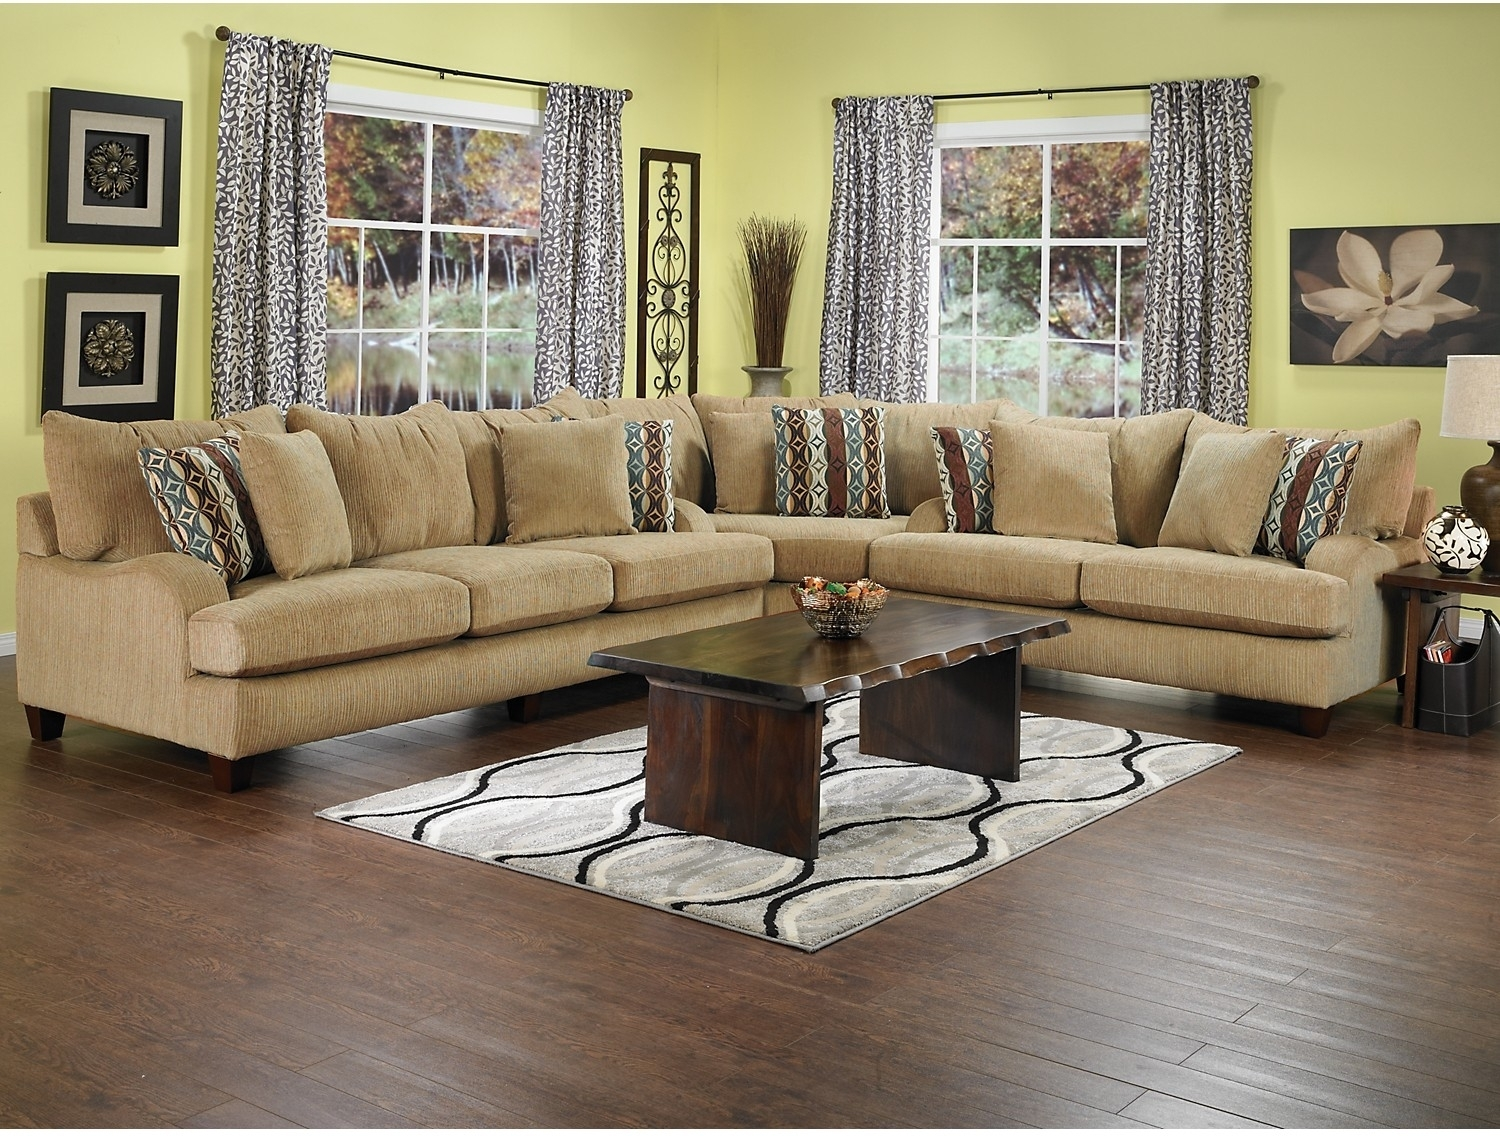 Inspiring The Brick Sectional Sofas 82 For Your Sectional Sofa Throughout The Brick Sectional Sofas (View 3 of 10)